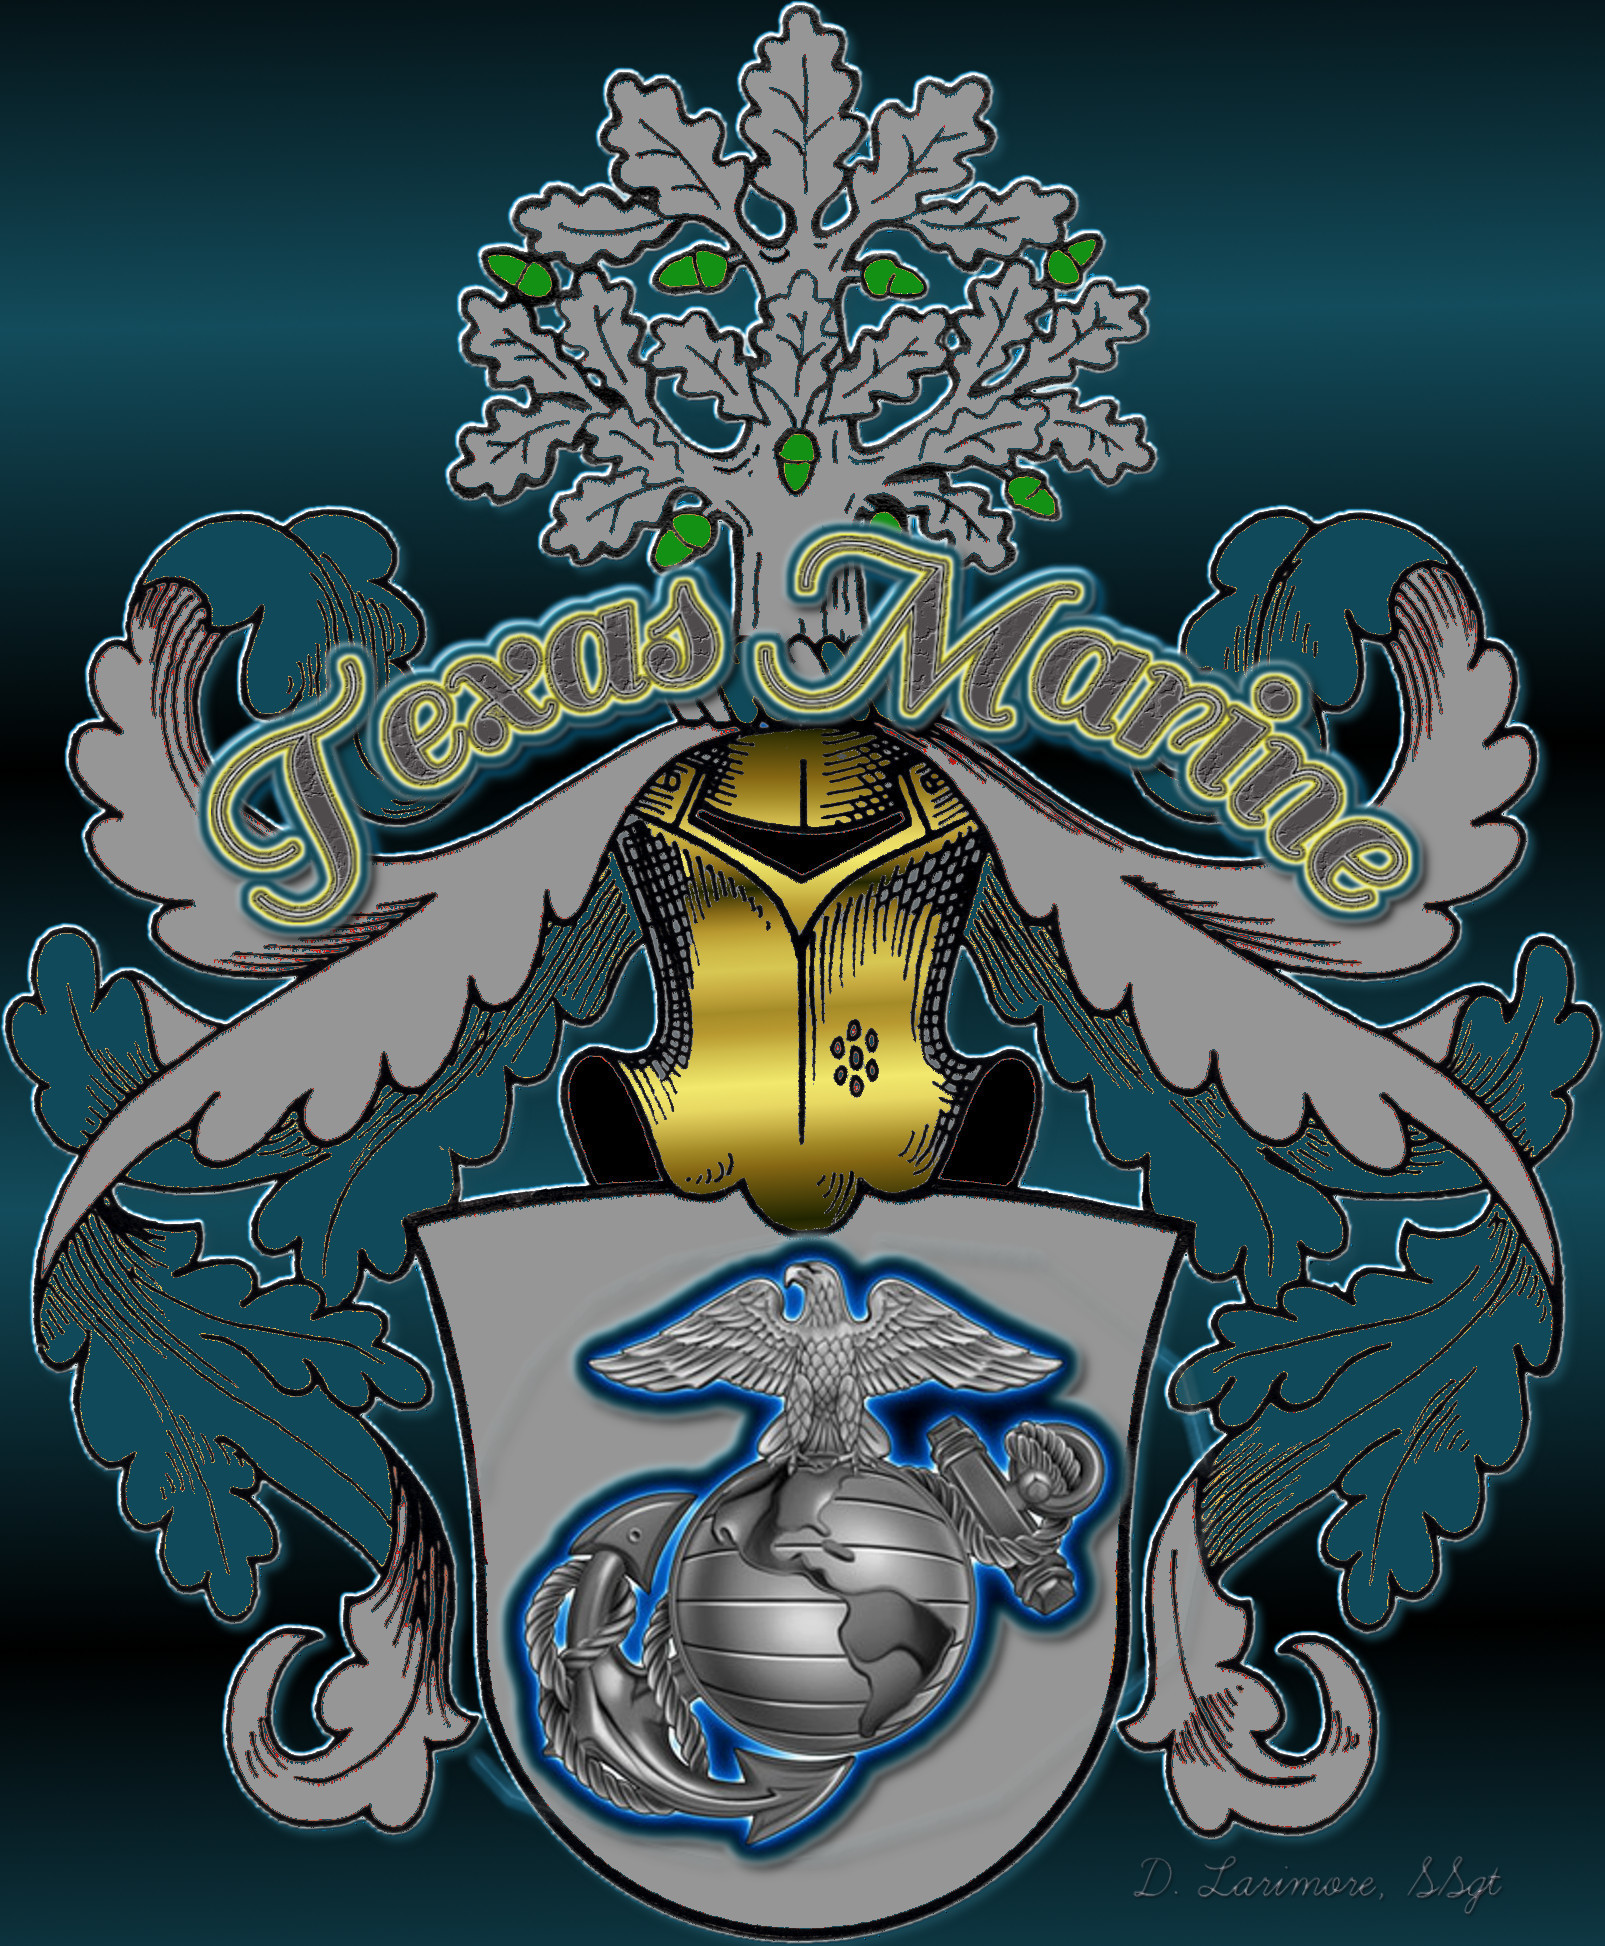 1605x1946 user cell phone wallpapers 24087 tx marine crest cell phone wallpaper